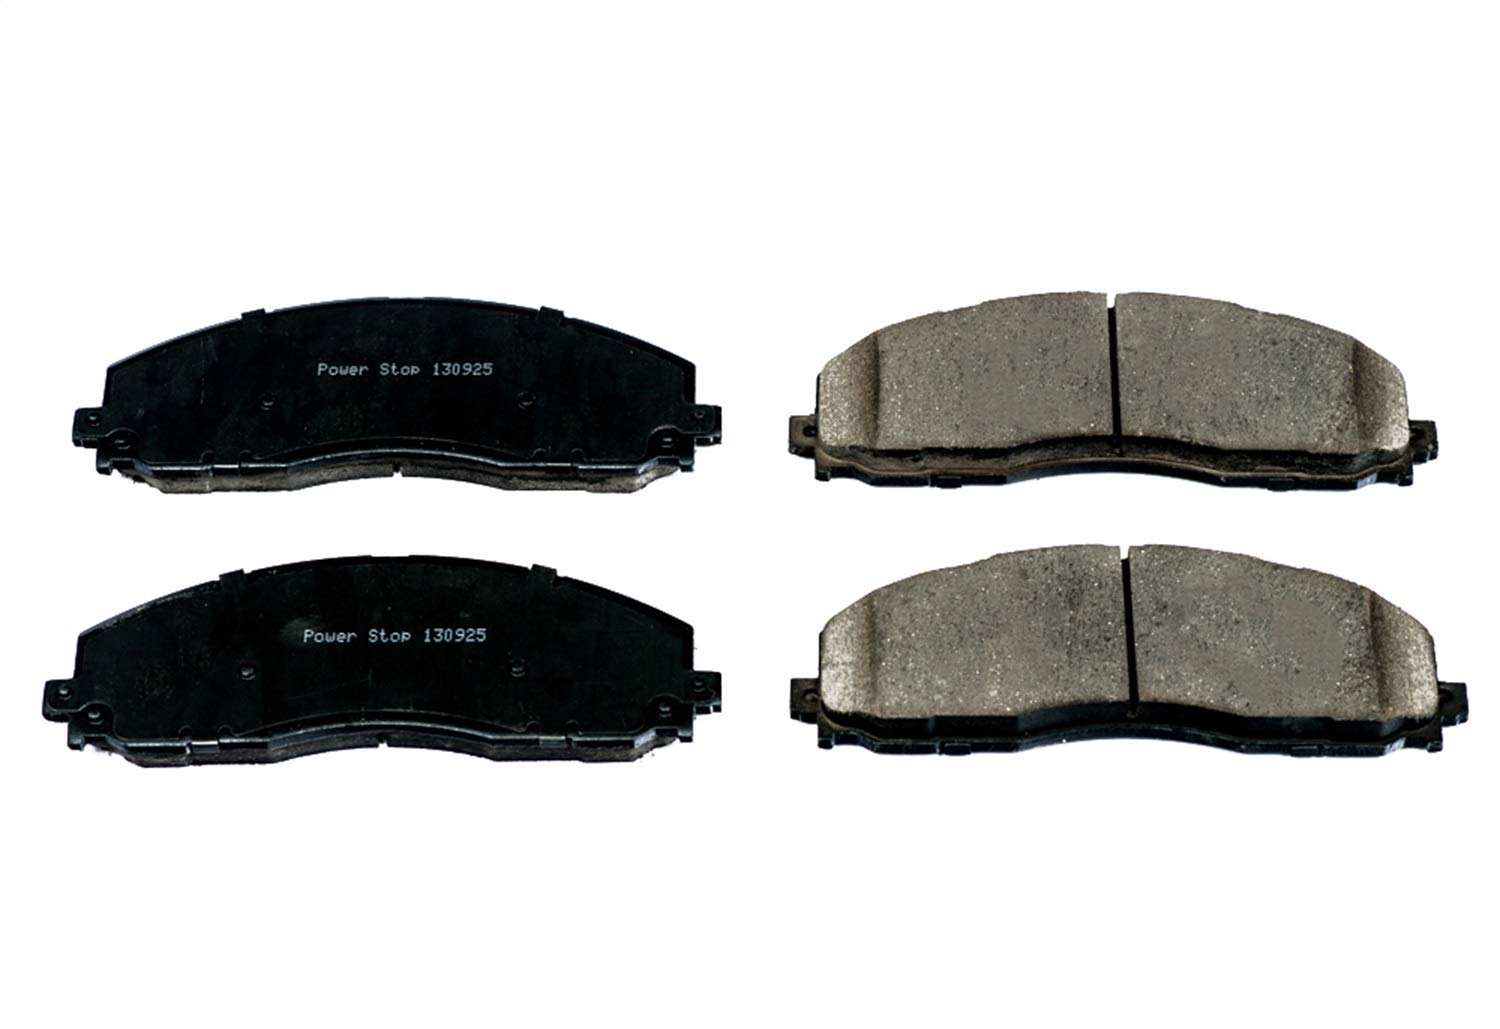 American Black ABD721C Professional Ceramic Front Disc Brake Pad Set Compatible With Subaru Forester//Impreza//Impreza RS//Legacy//Outback Perfect Fit OE Premium Quality QUIET and DUST FREE